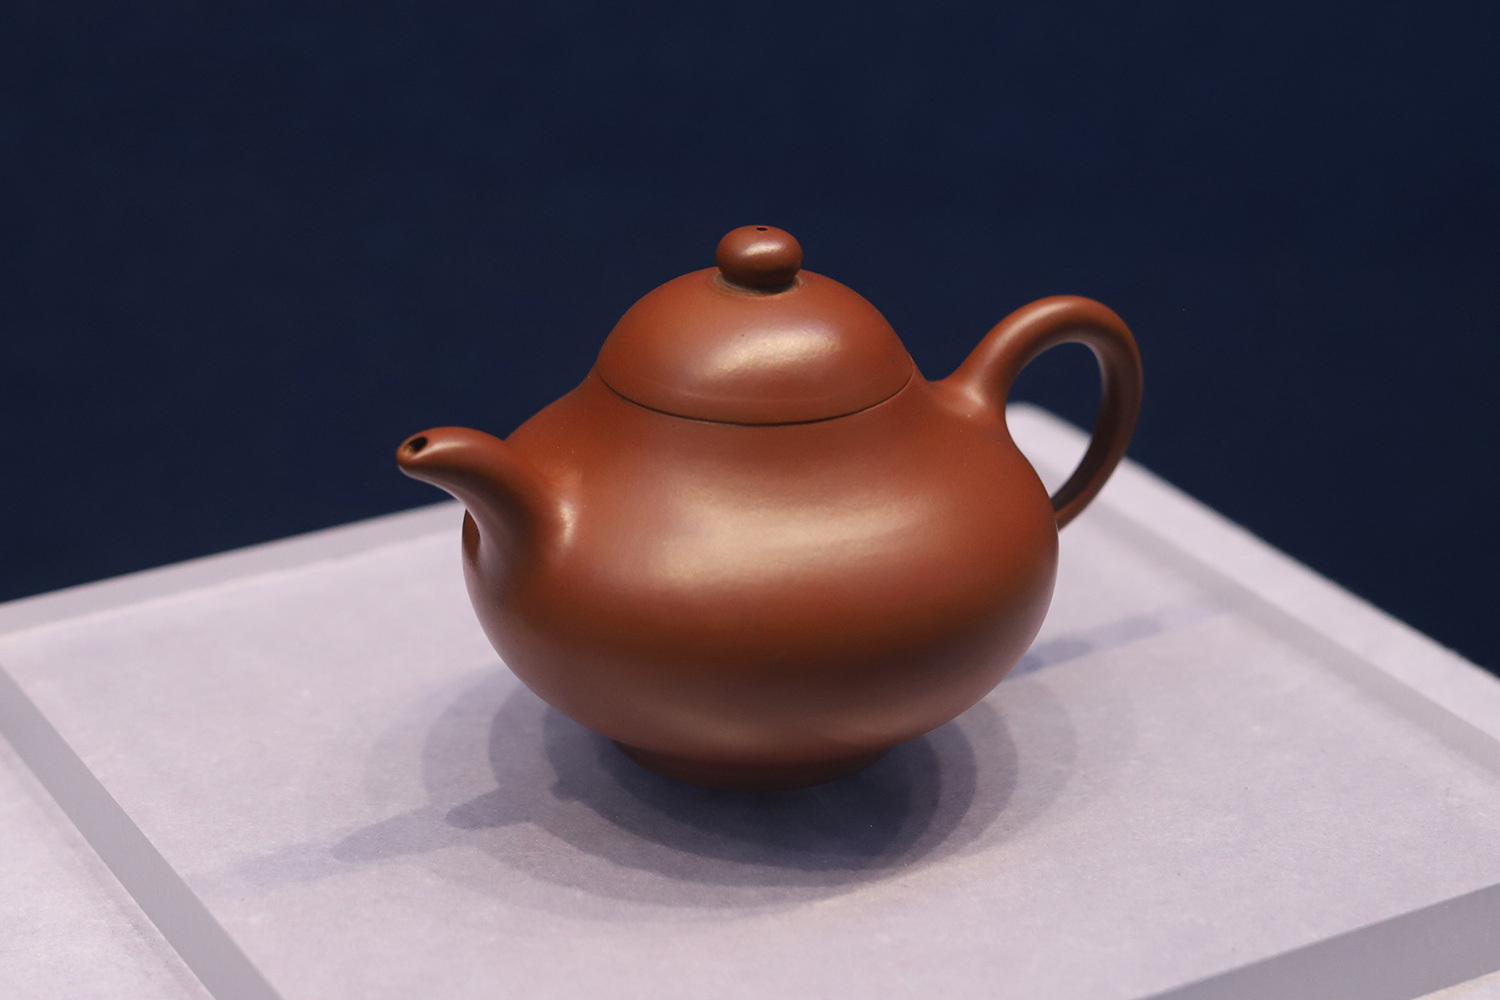 Pear-shaped Red Clay Teapot by Gu Jingzhou